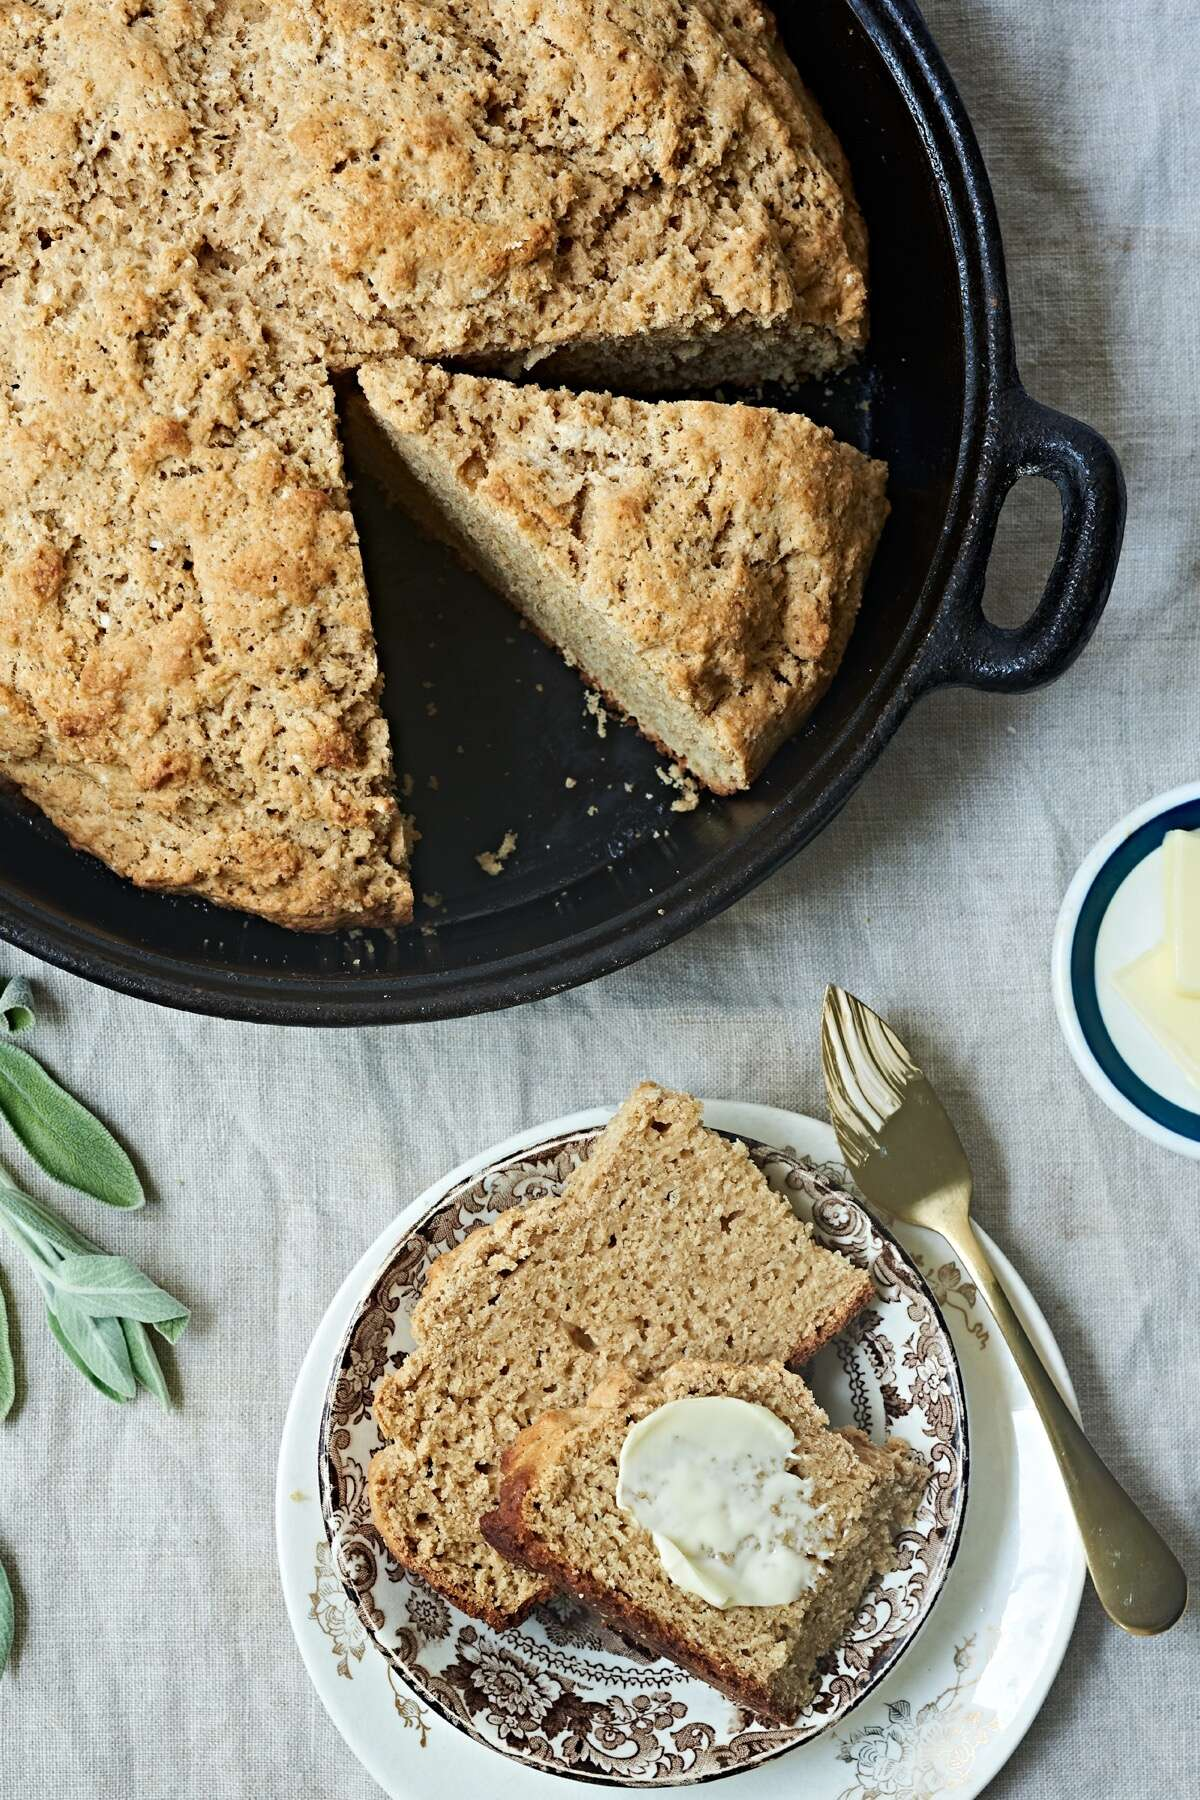 Irish Buttermilk Brown Bread baked in a cast iron pan, one wedge placed on a plate and buttered.